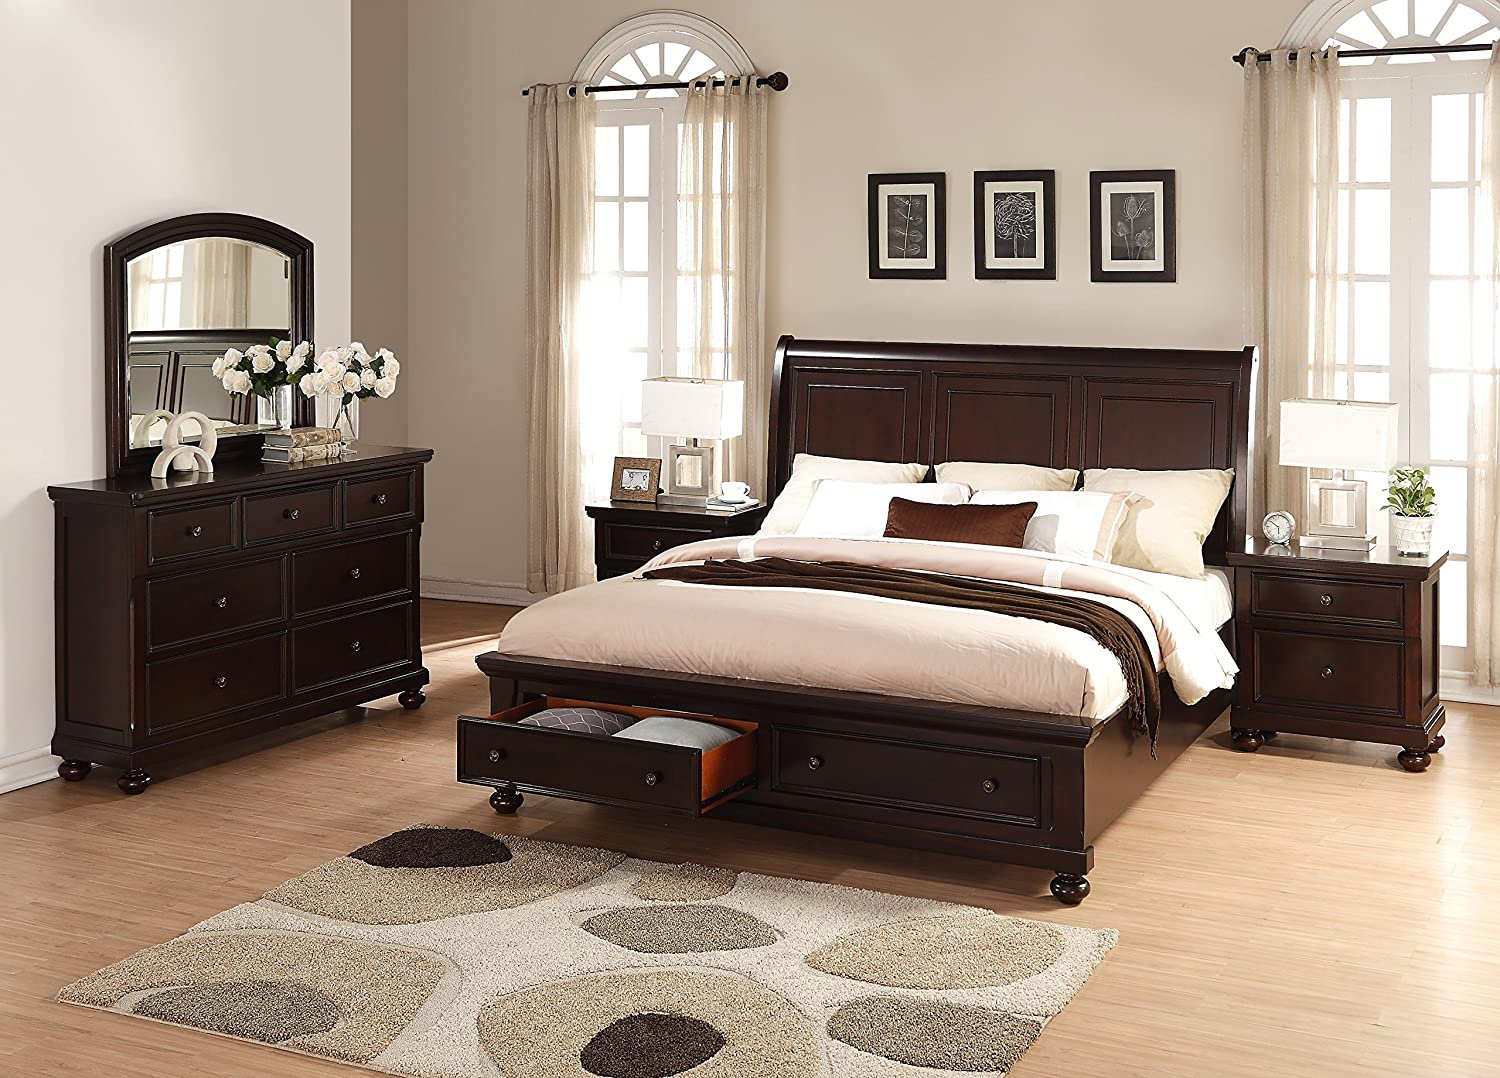 Roundhill Furniture Brishland Storage Bedroom Set Includes Dresser - Mirror and 2 Nighstands - King Bed - Rustic Cherry